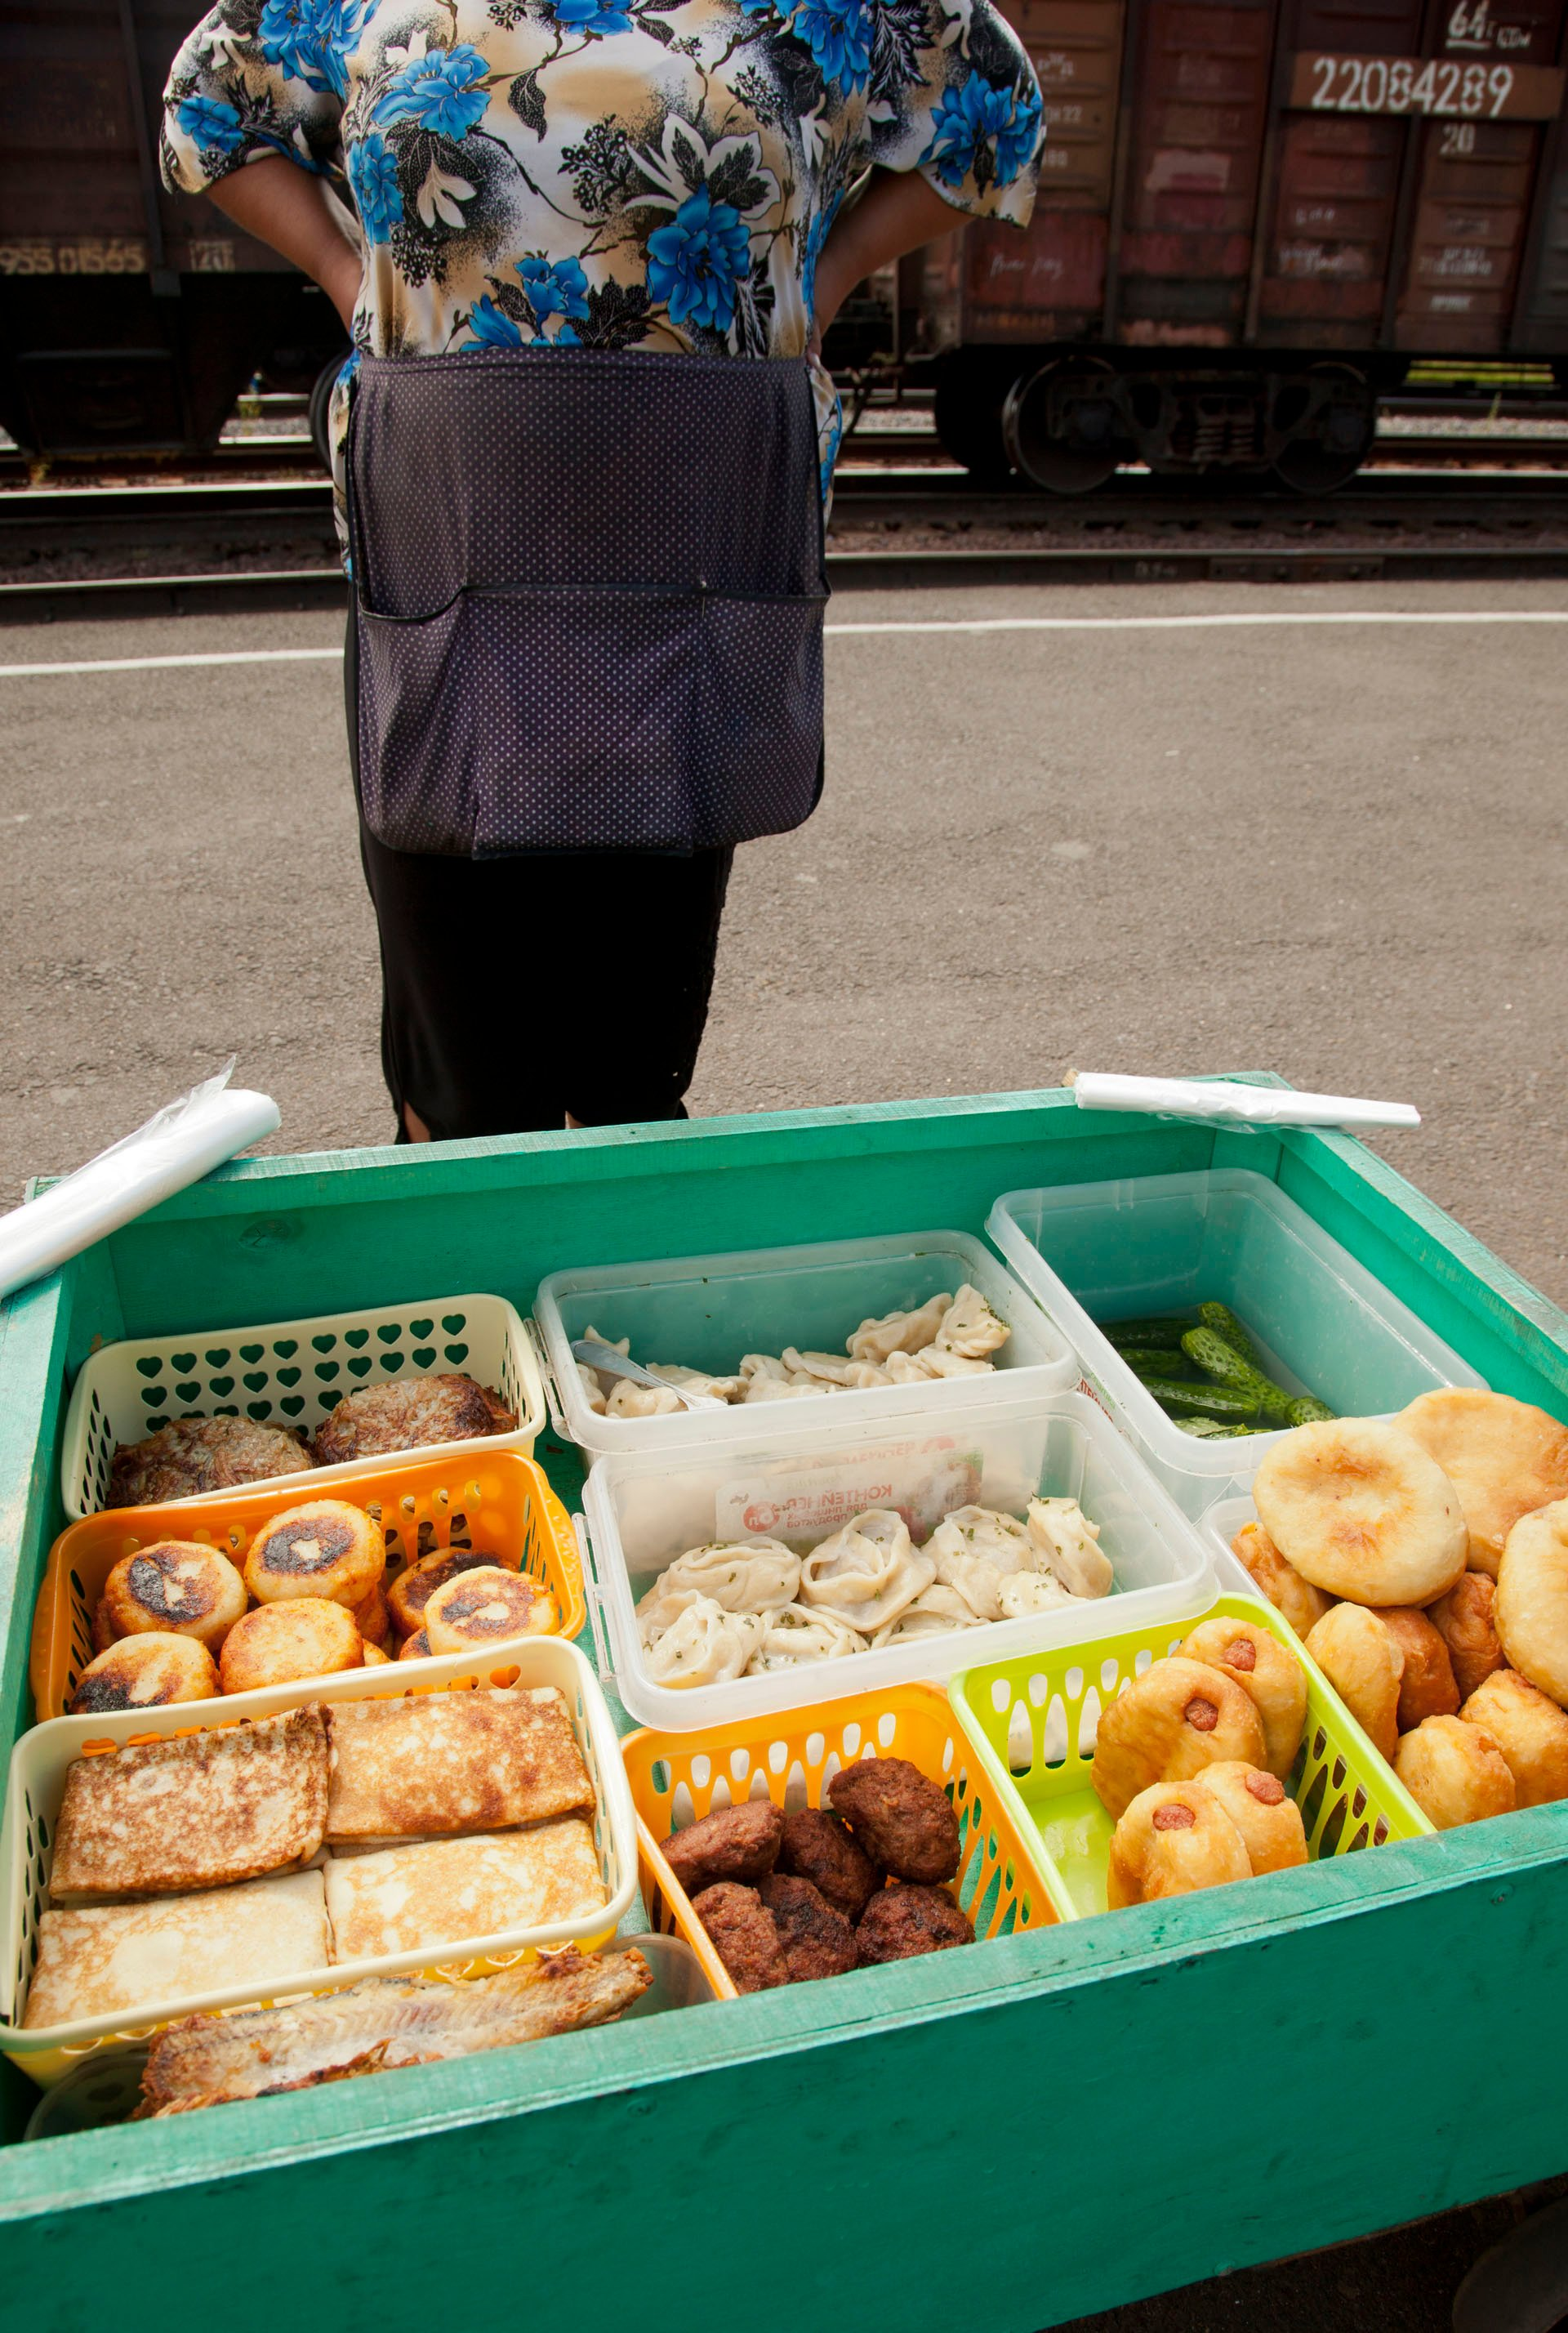 Families make full incomes and grandmothers supplement their pensions by selling hot homemade goods to travellers on the Trans-Siberian railway no matter the time of day